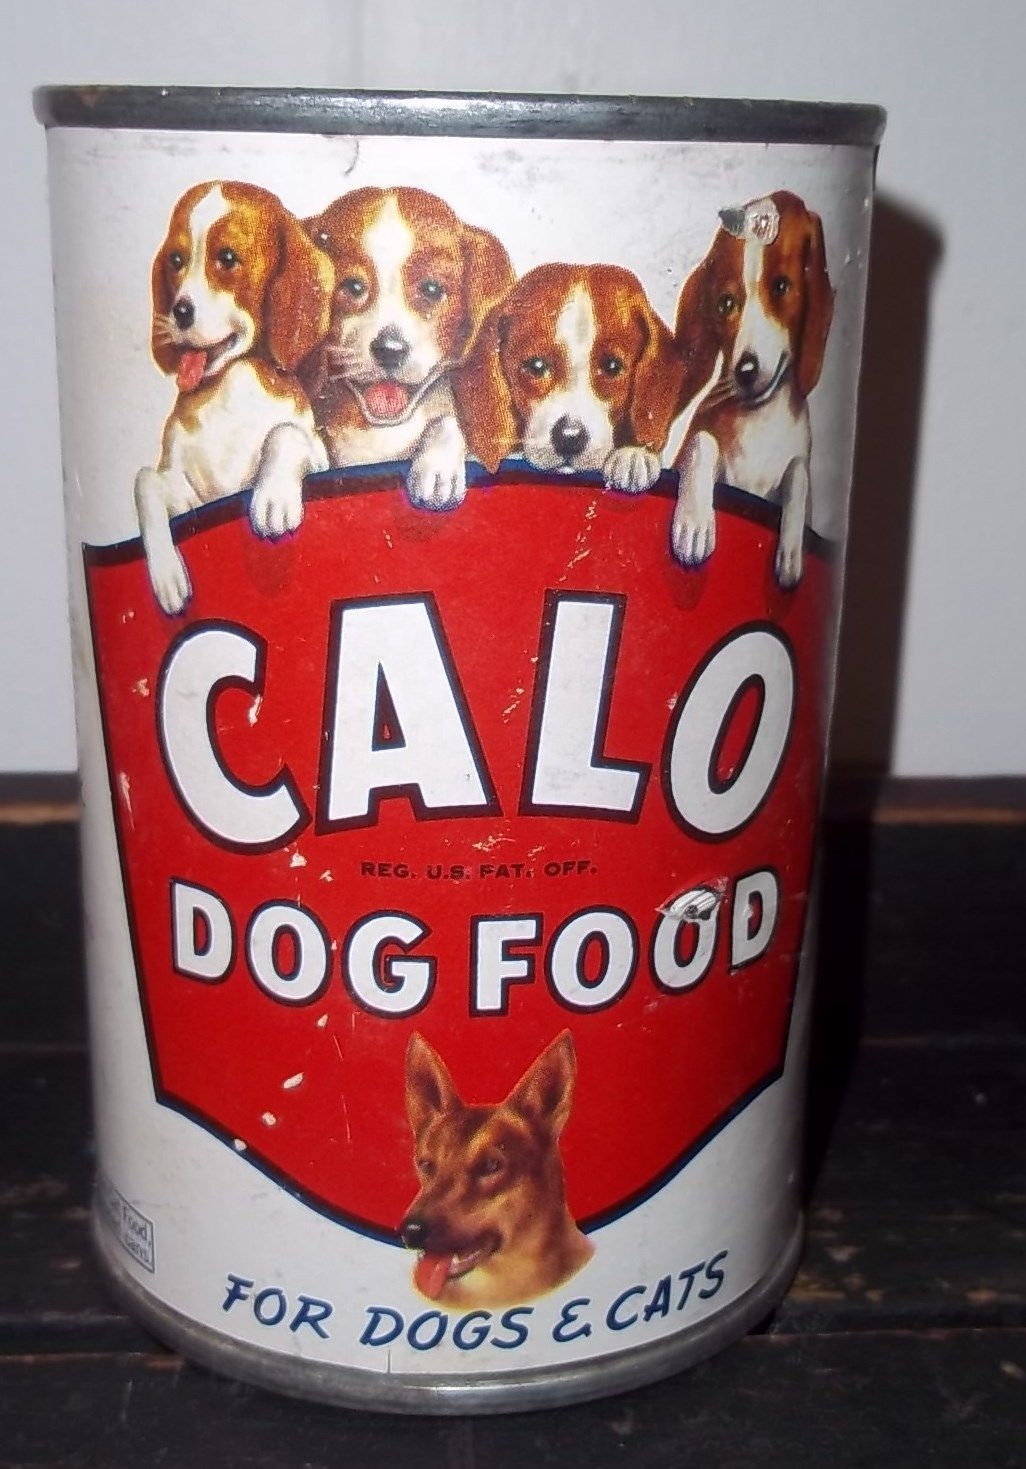 Calo dog food can paper litho for cats too dog food